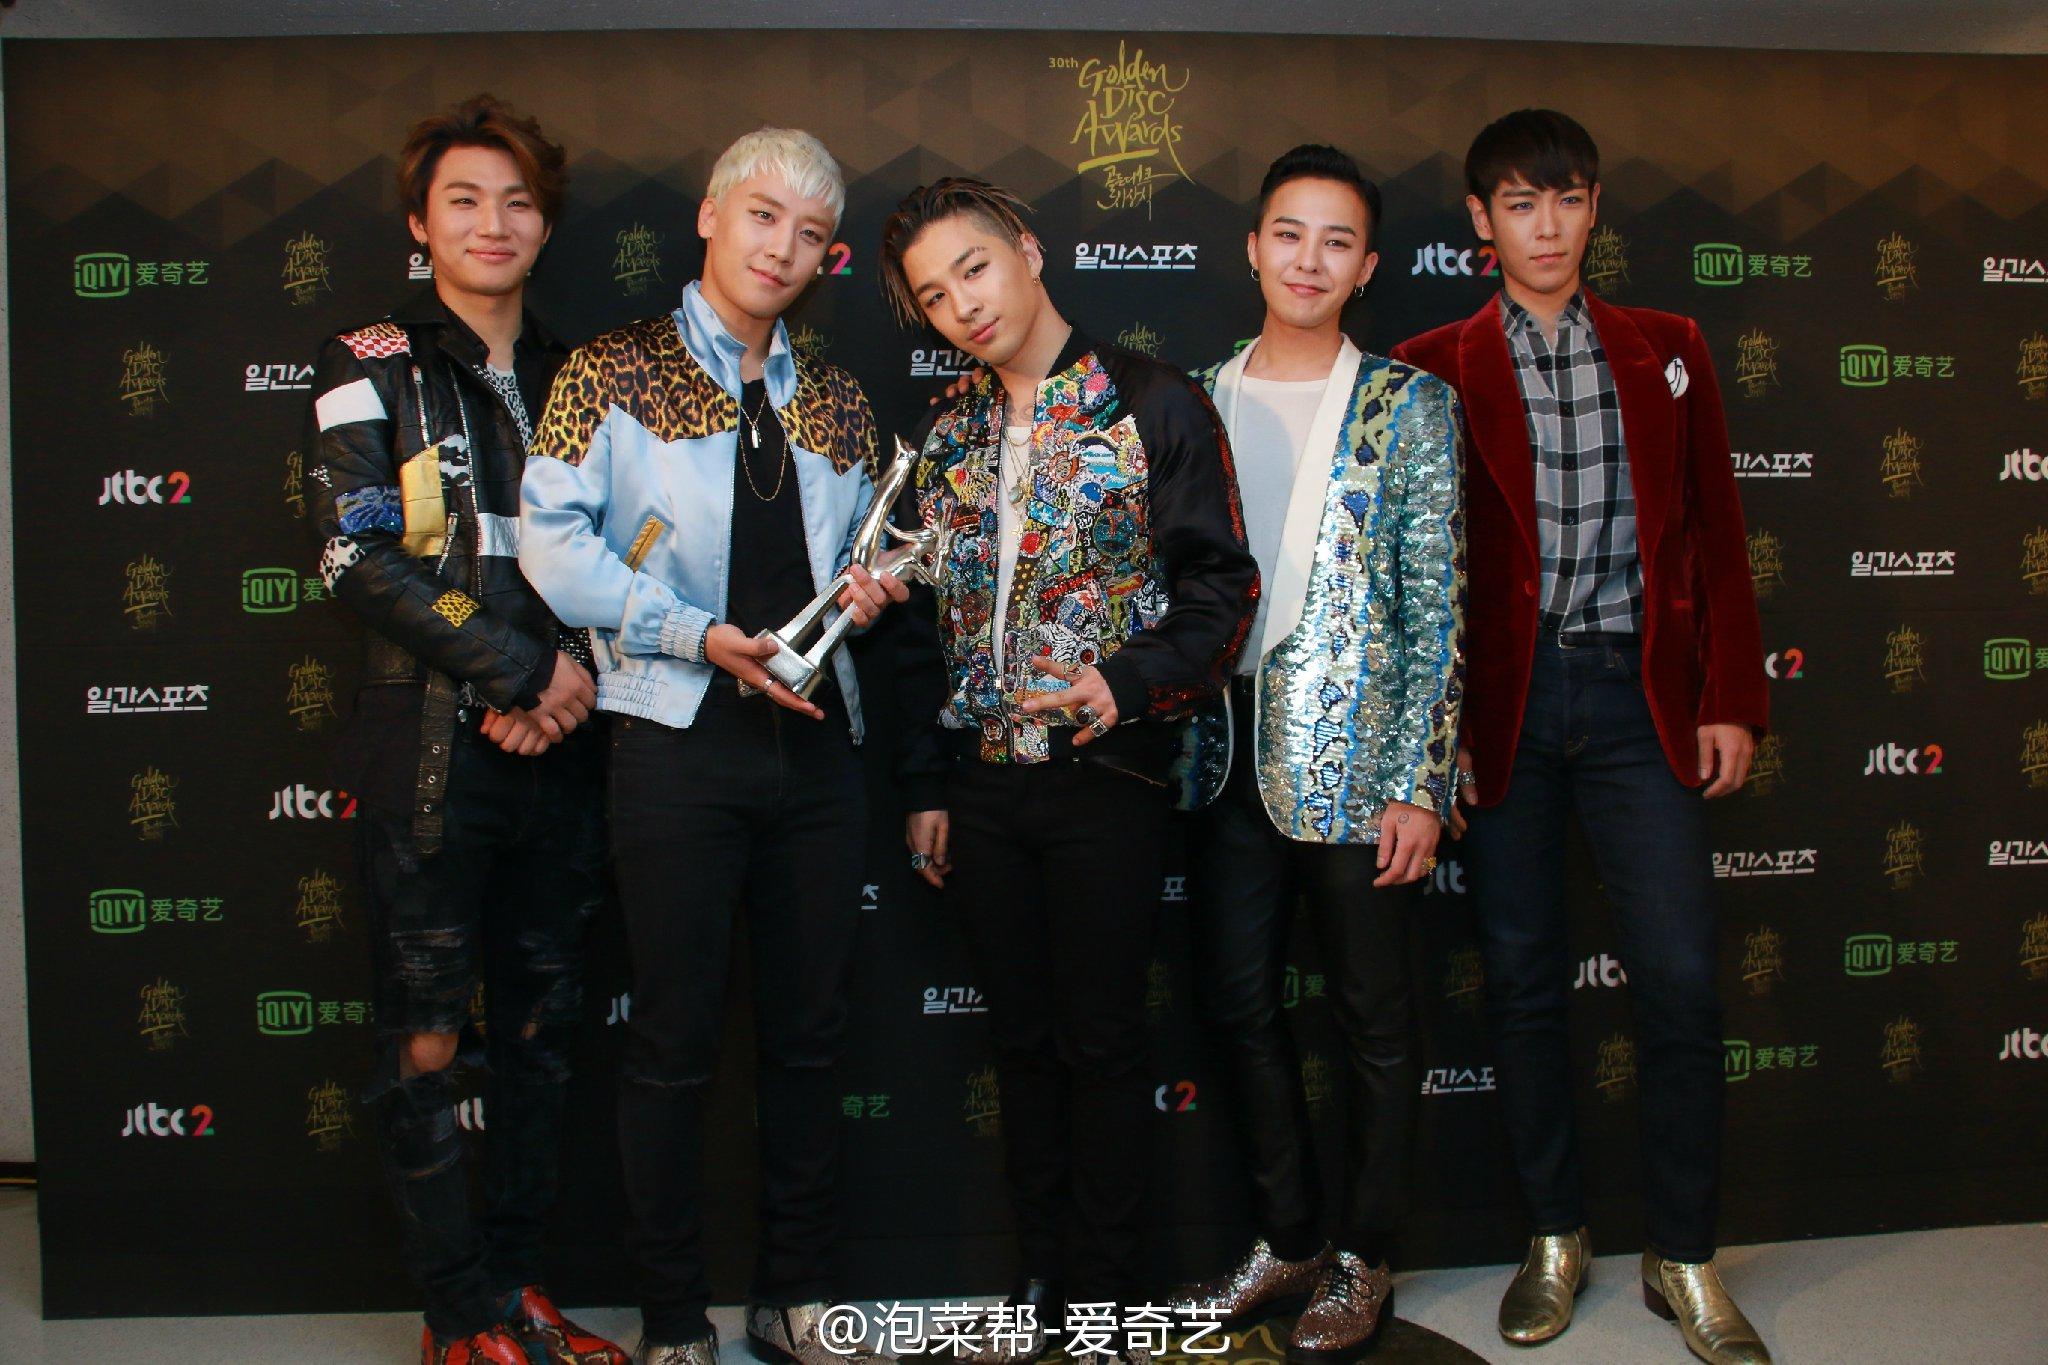 BIGBANG - Golden Disk Awards - Backstage - 20jan2016 - 泡菜帮-爱奇艺 - 11